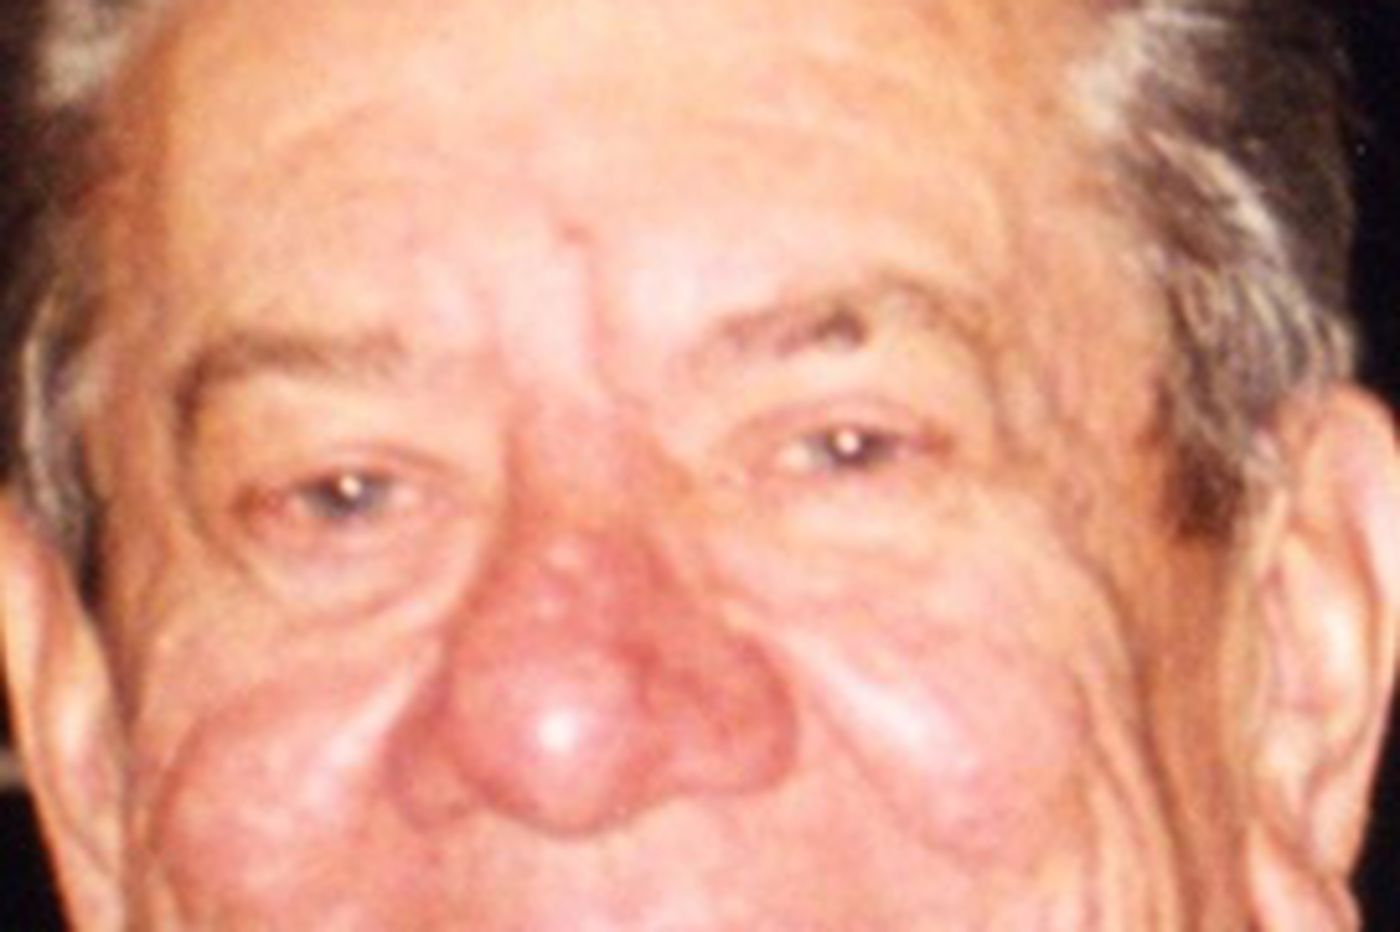 Charles A. Tague | Customs broker, 73